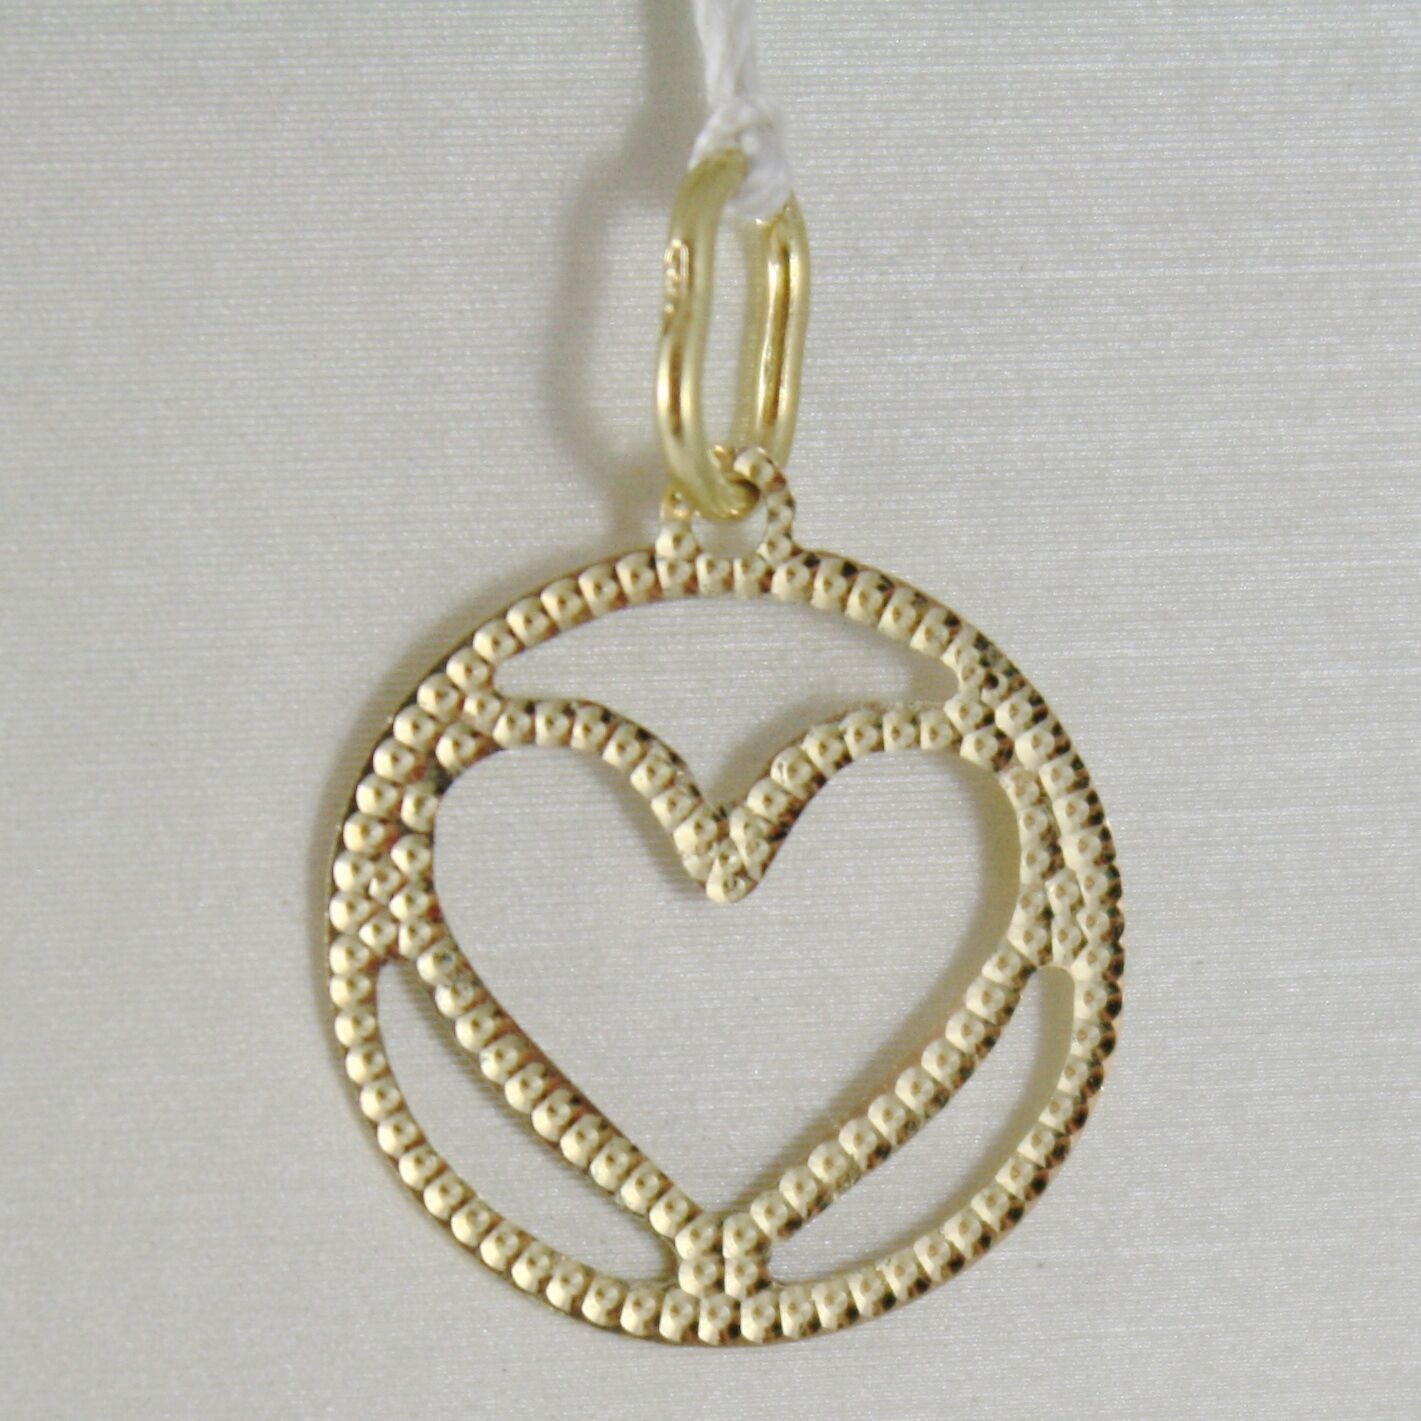 18K YELLOW GOLD HEART PENDANT CHARM 22 MM FINELY WORKED, BRIGHT, MADE IN ITALY